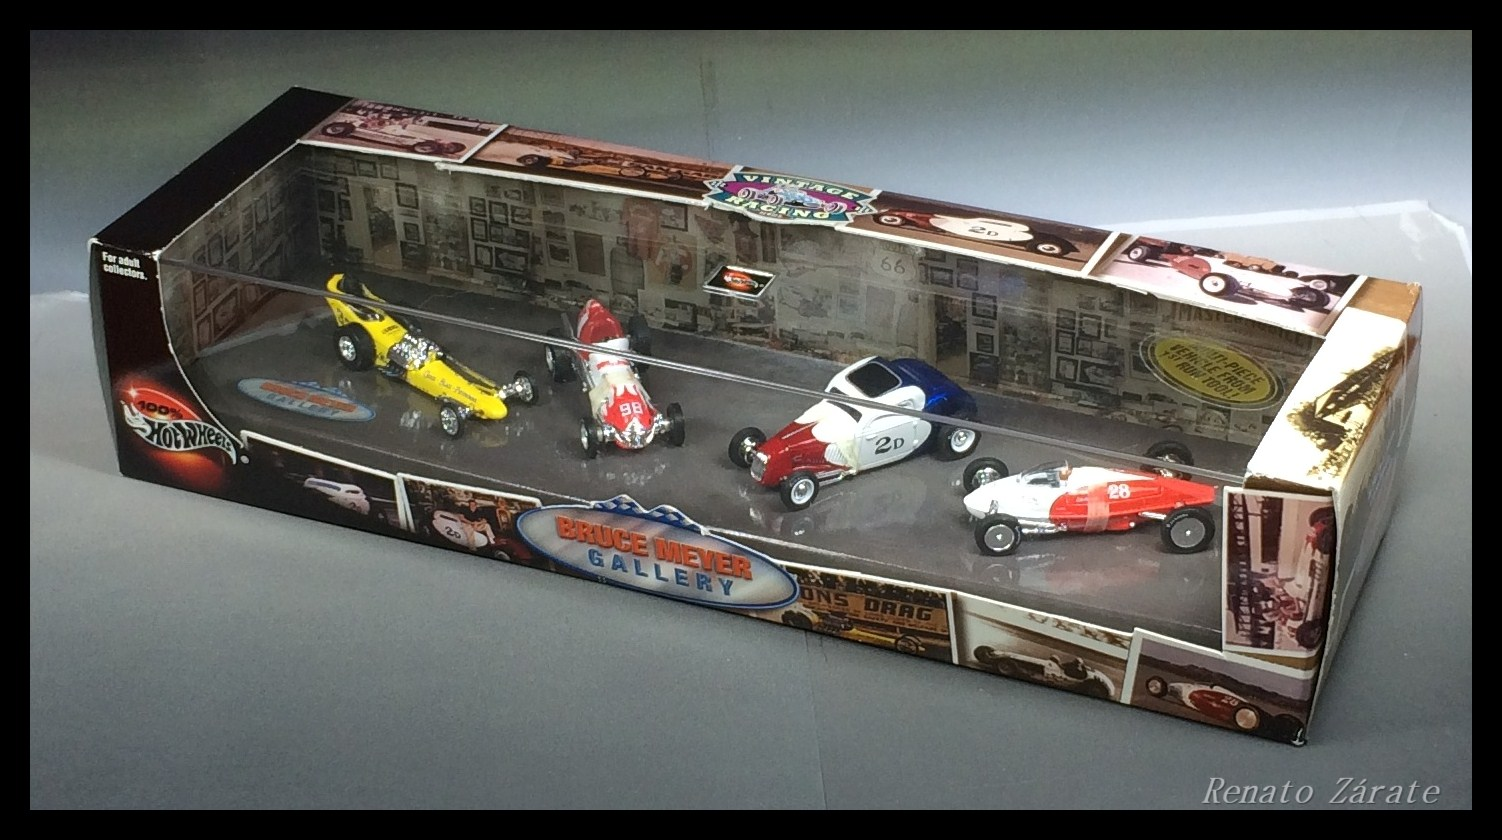 Bruce Meyer Gallery 4-Car Set